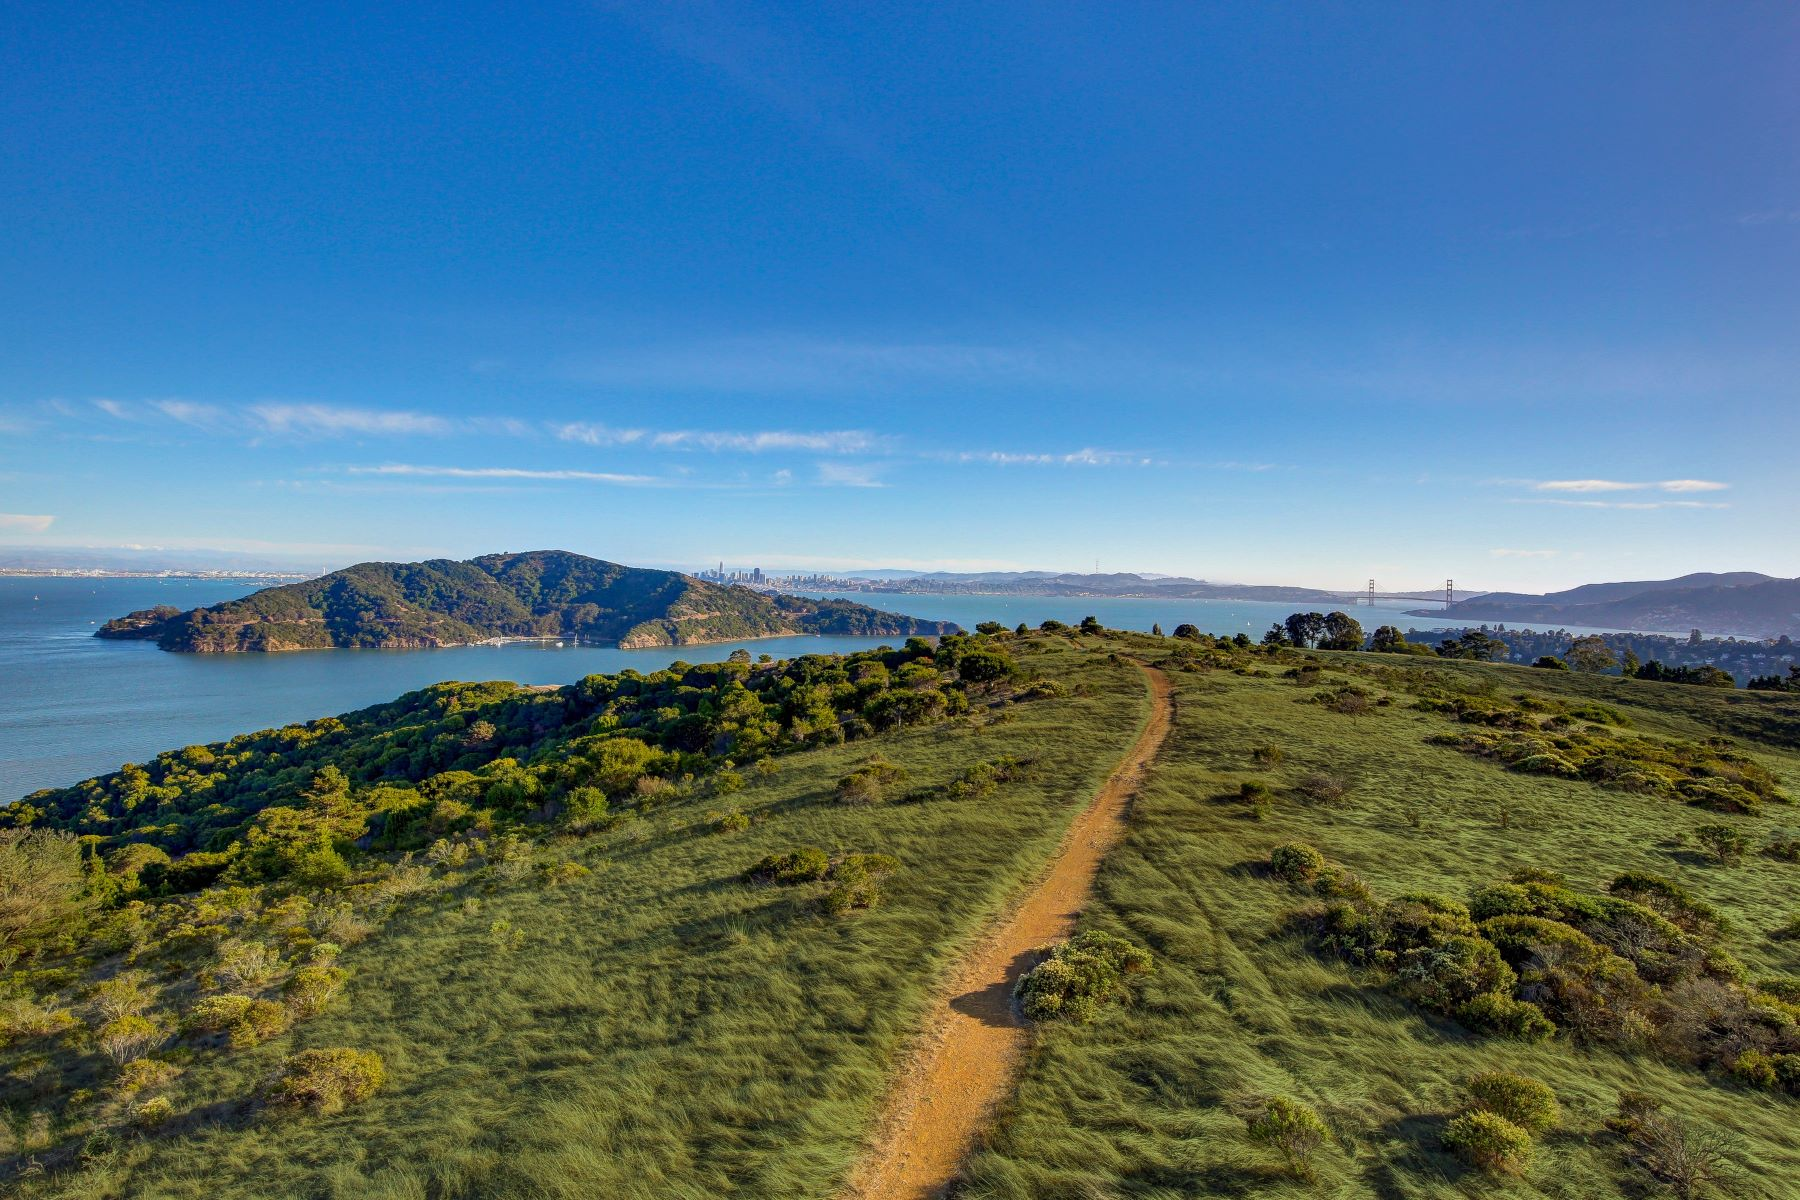 Property for Sale at Easton Point! Tiburon, California 94920 United States